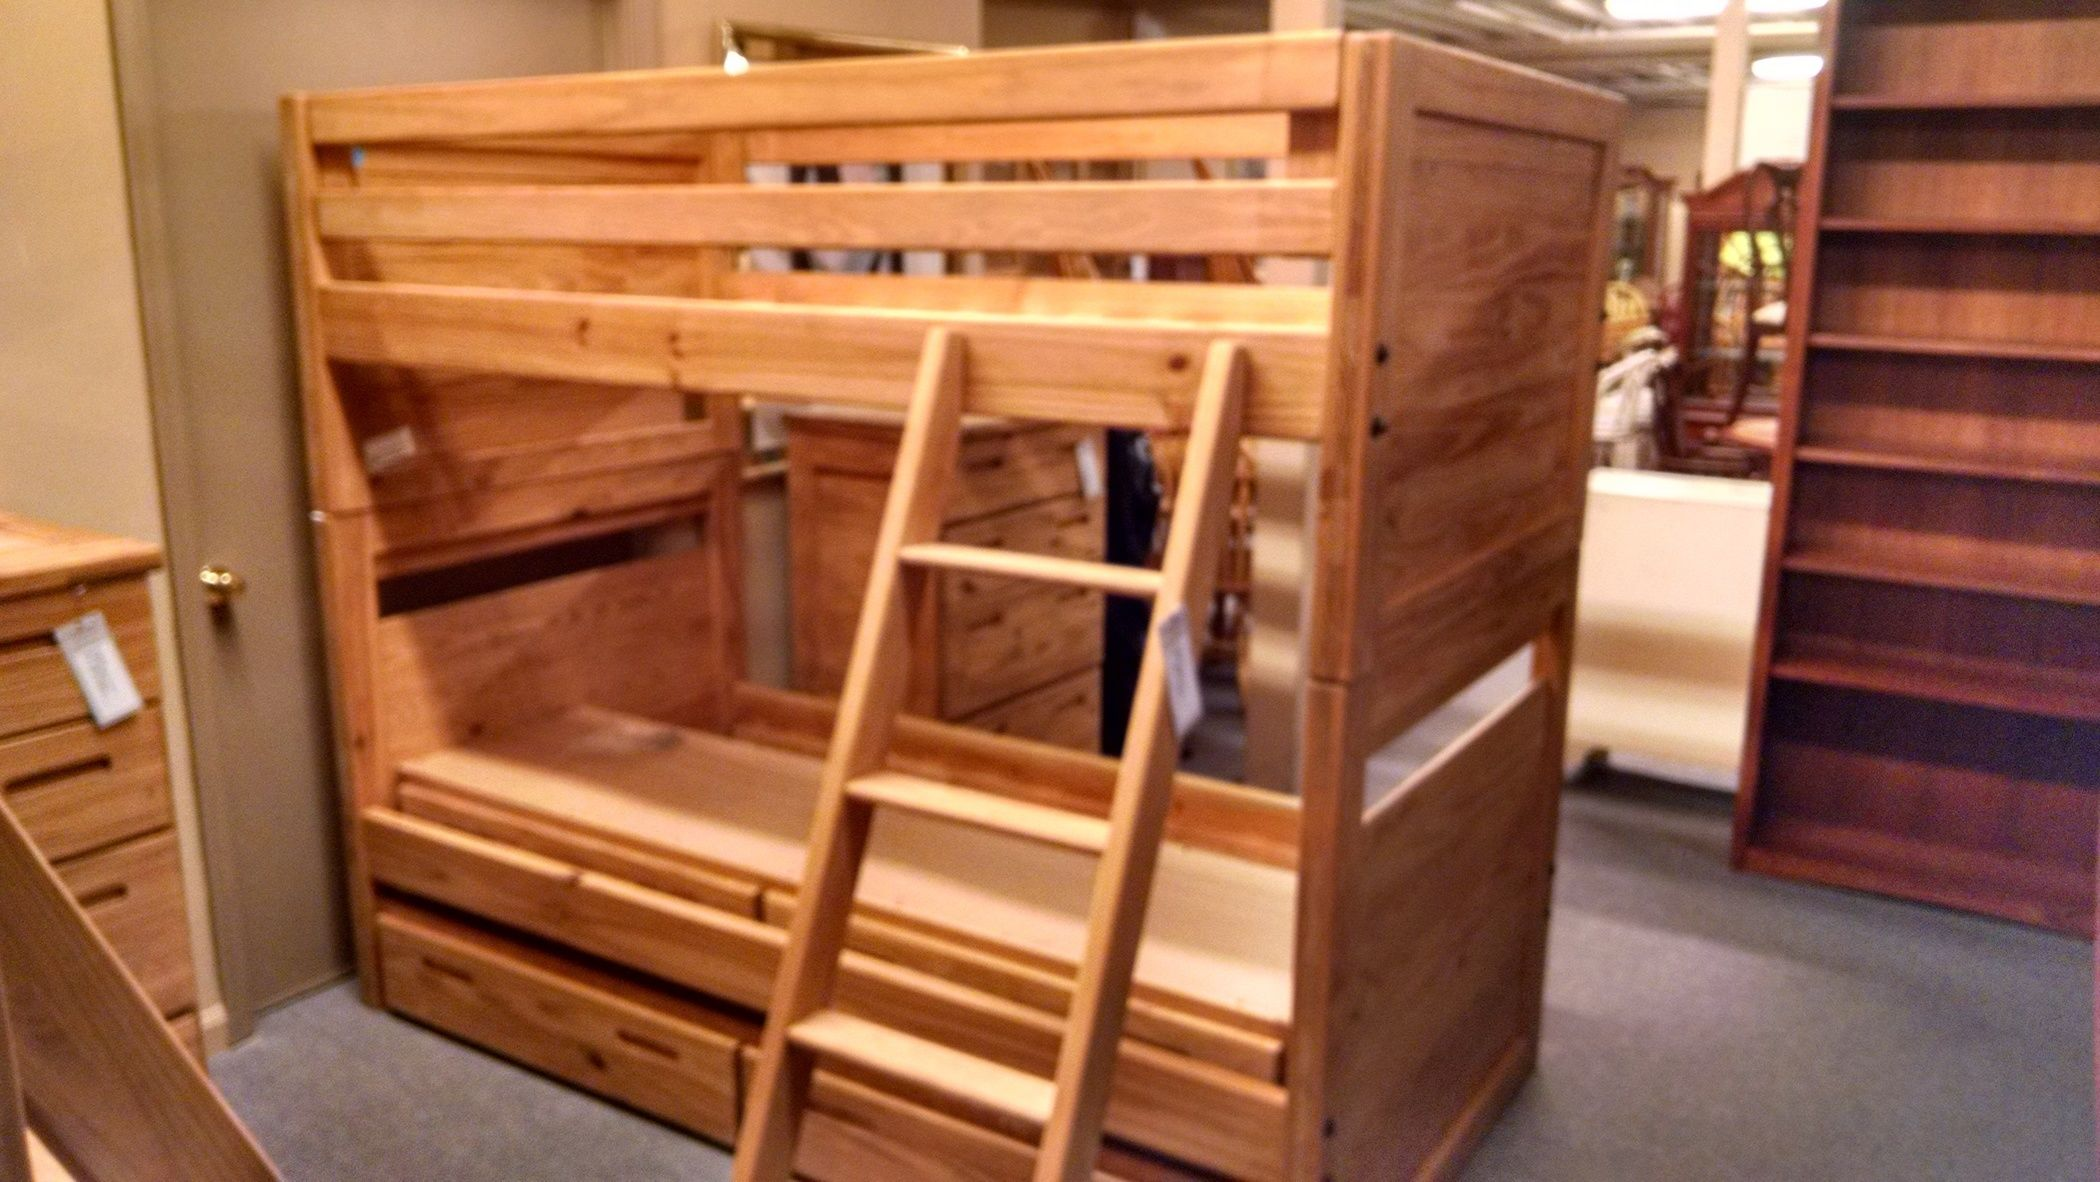 This End Up Bunk Beds Fascinating This End Up Bunk Beds Ebay